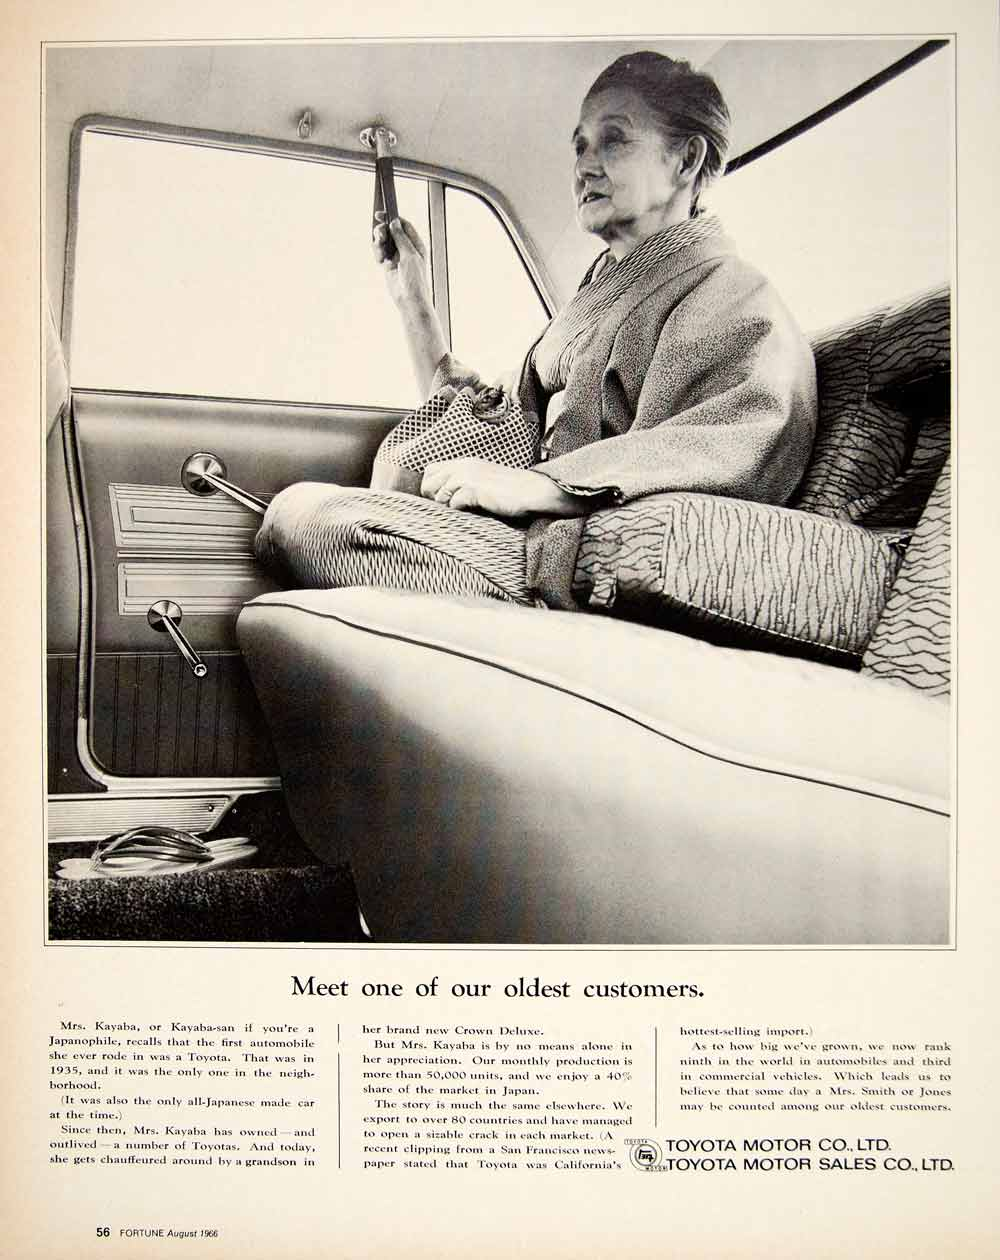 1966 Ad Vintage Toyota Import Japanese Car Oldest Customer Mrs. Kayab-san YFM3